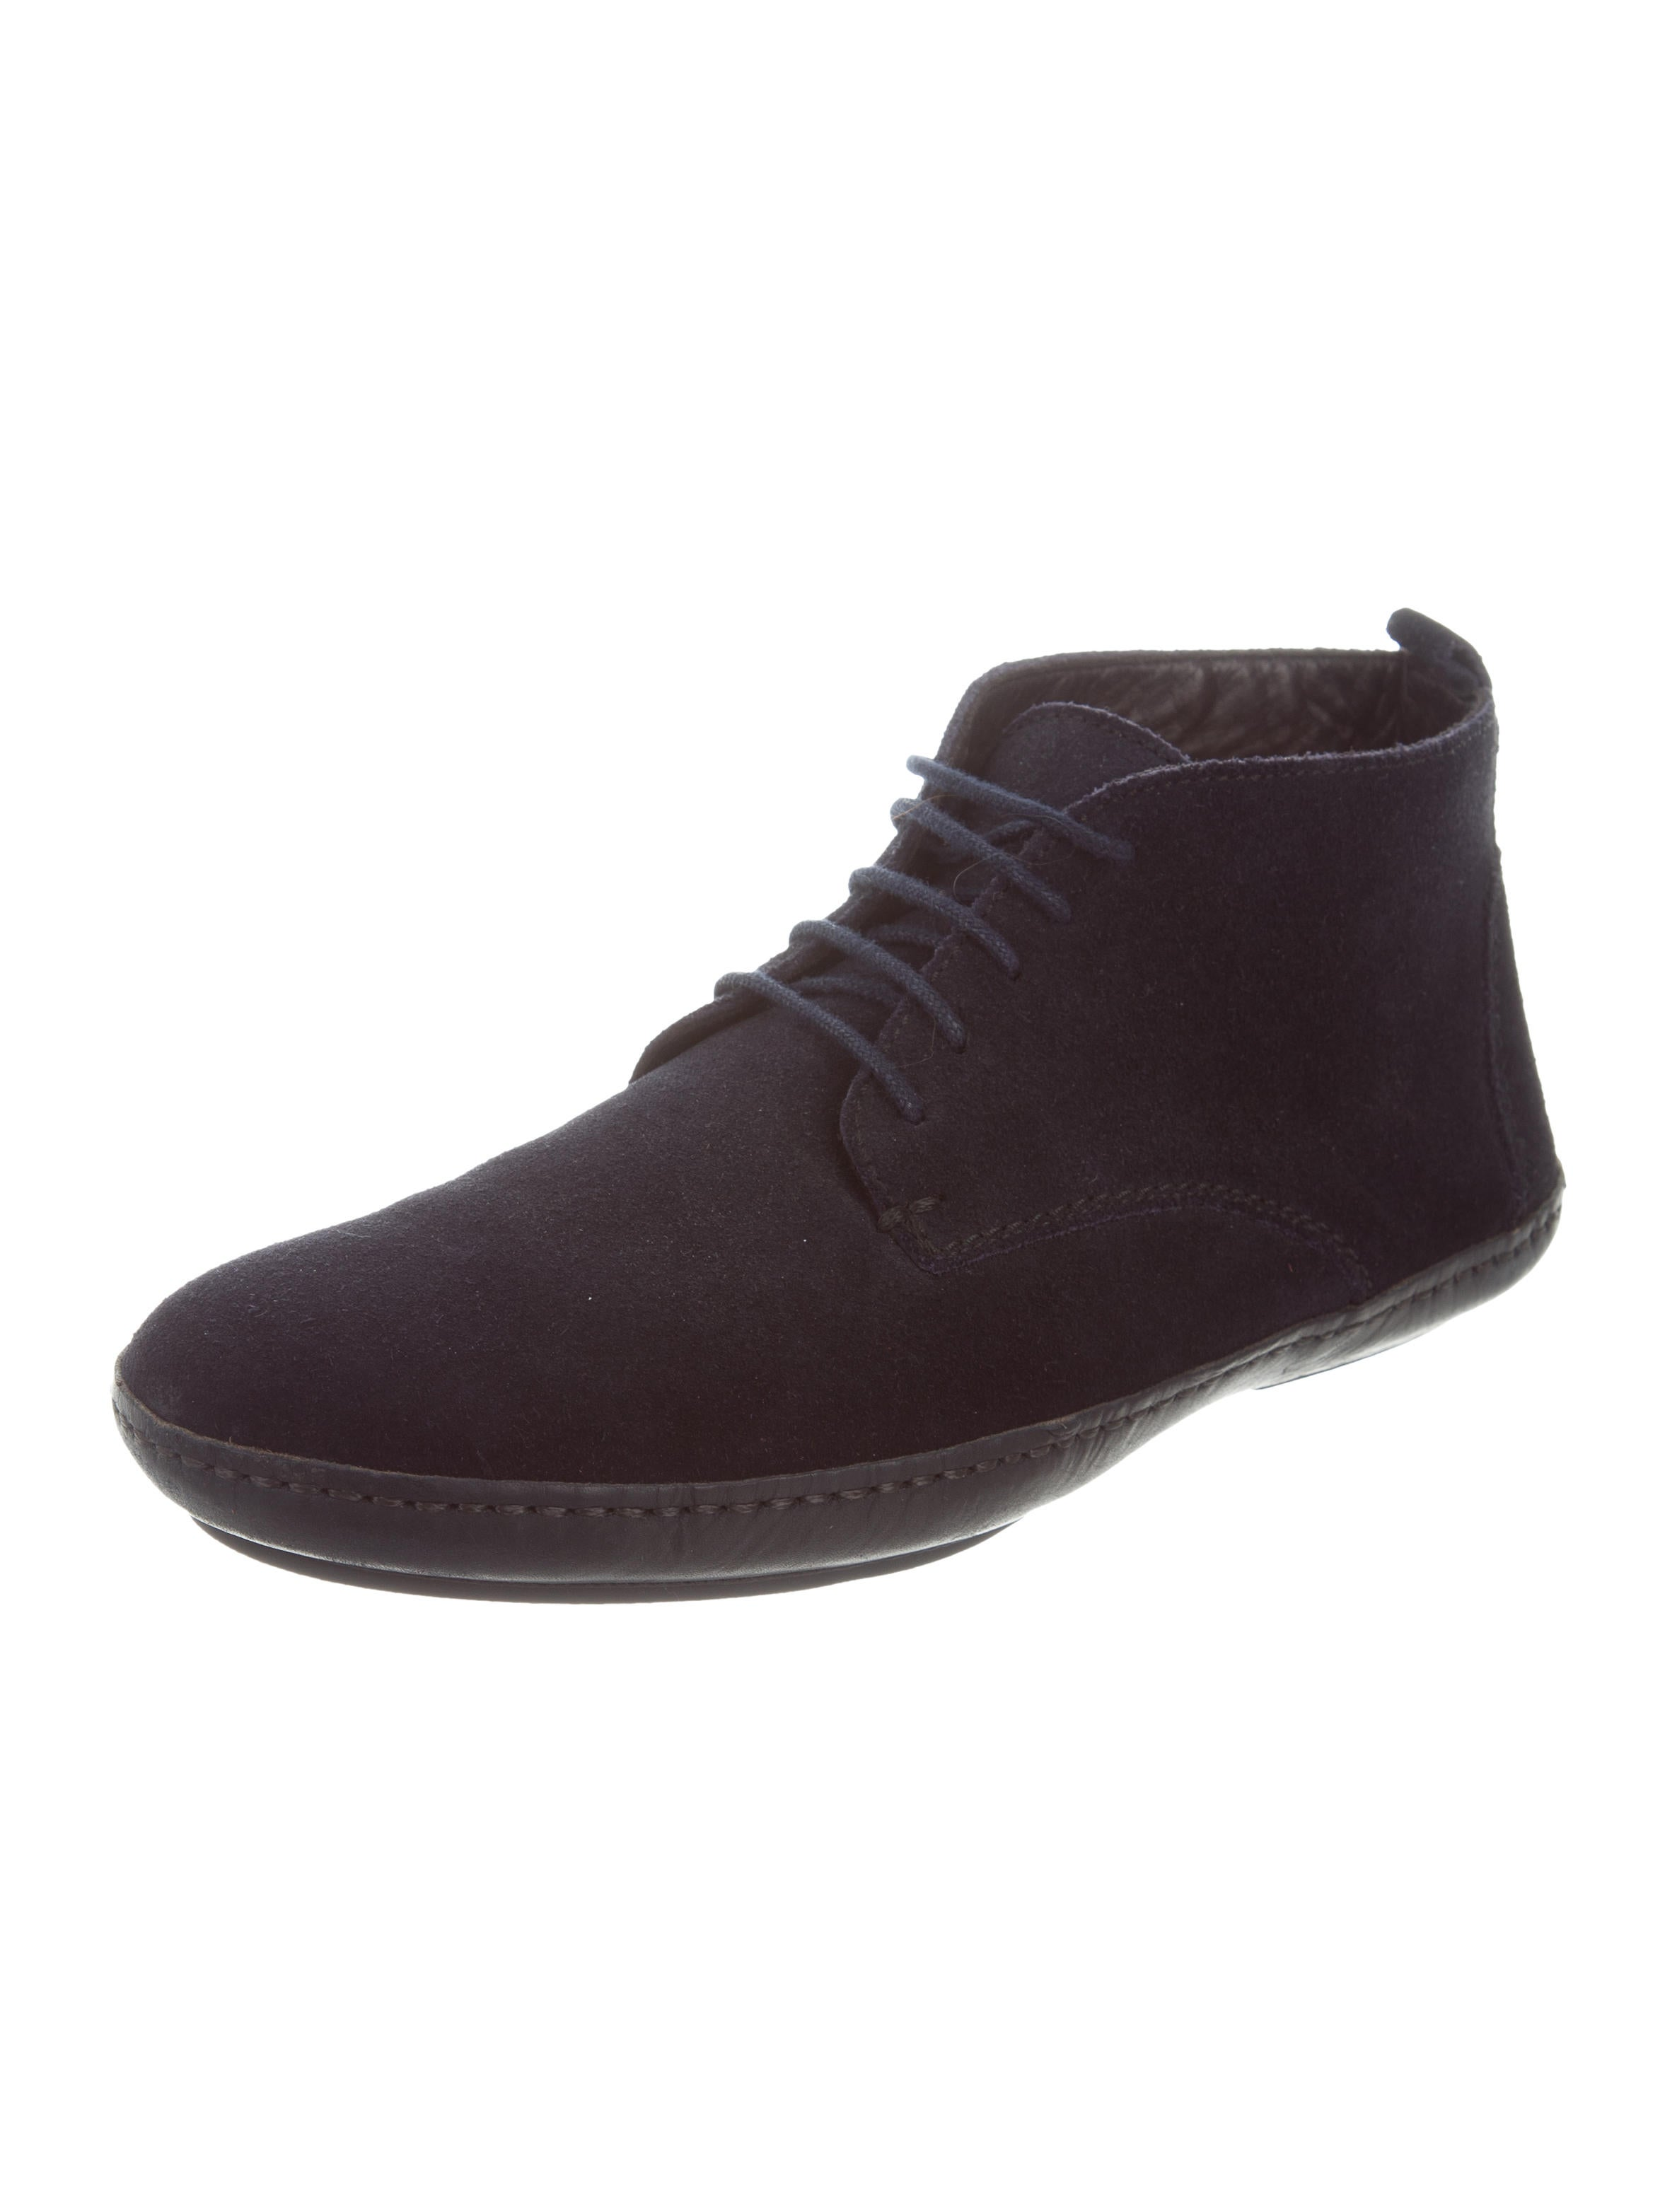 lanvin suede desert boots shoes lan65010 the realreal